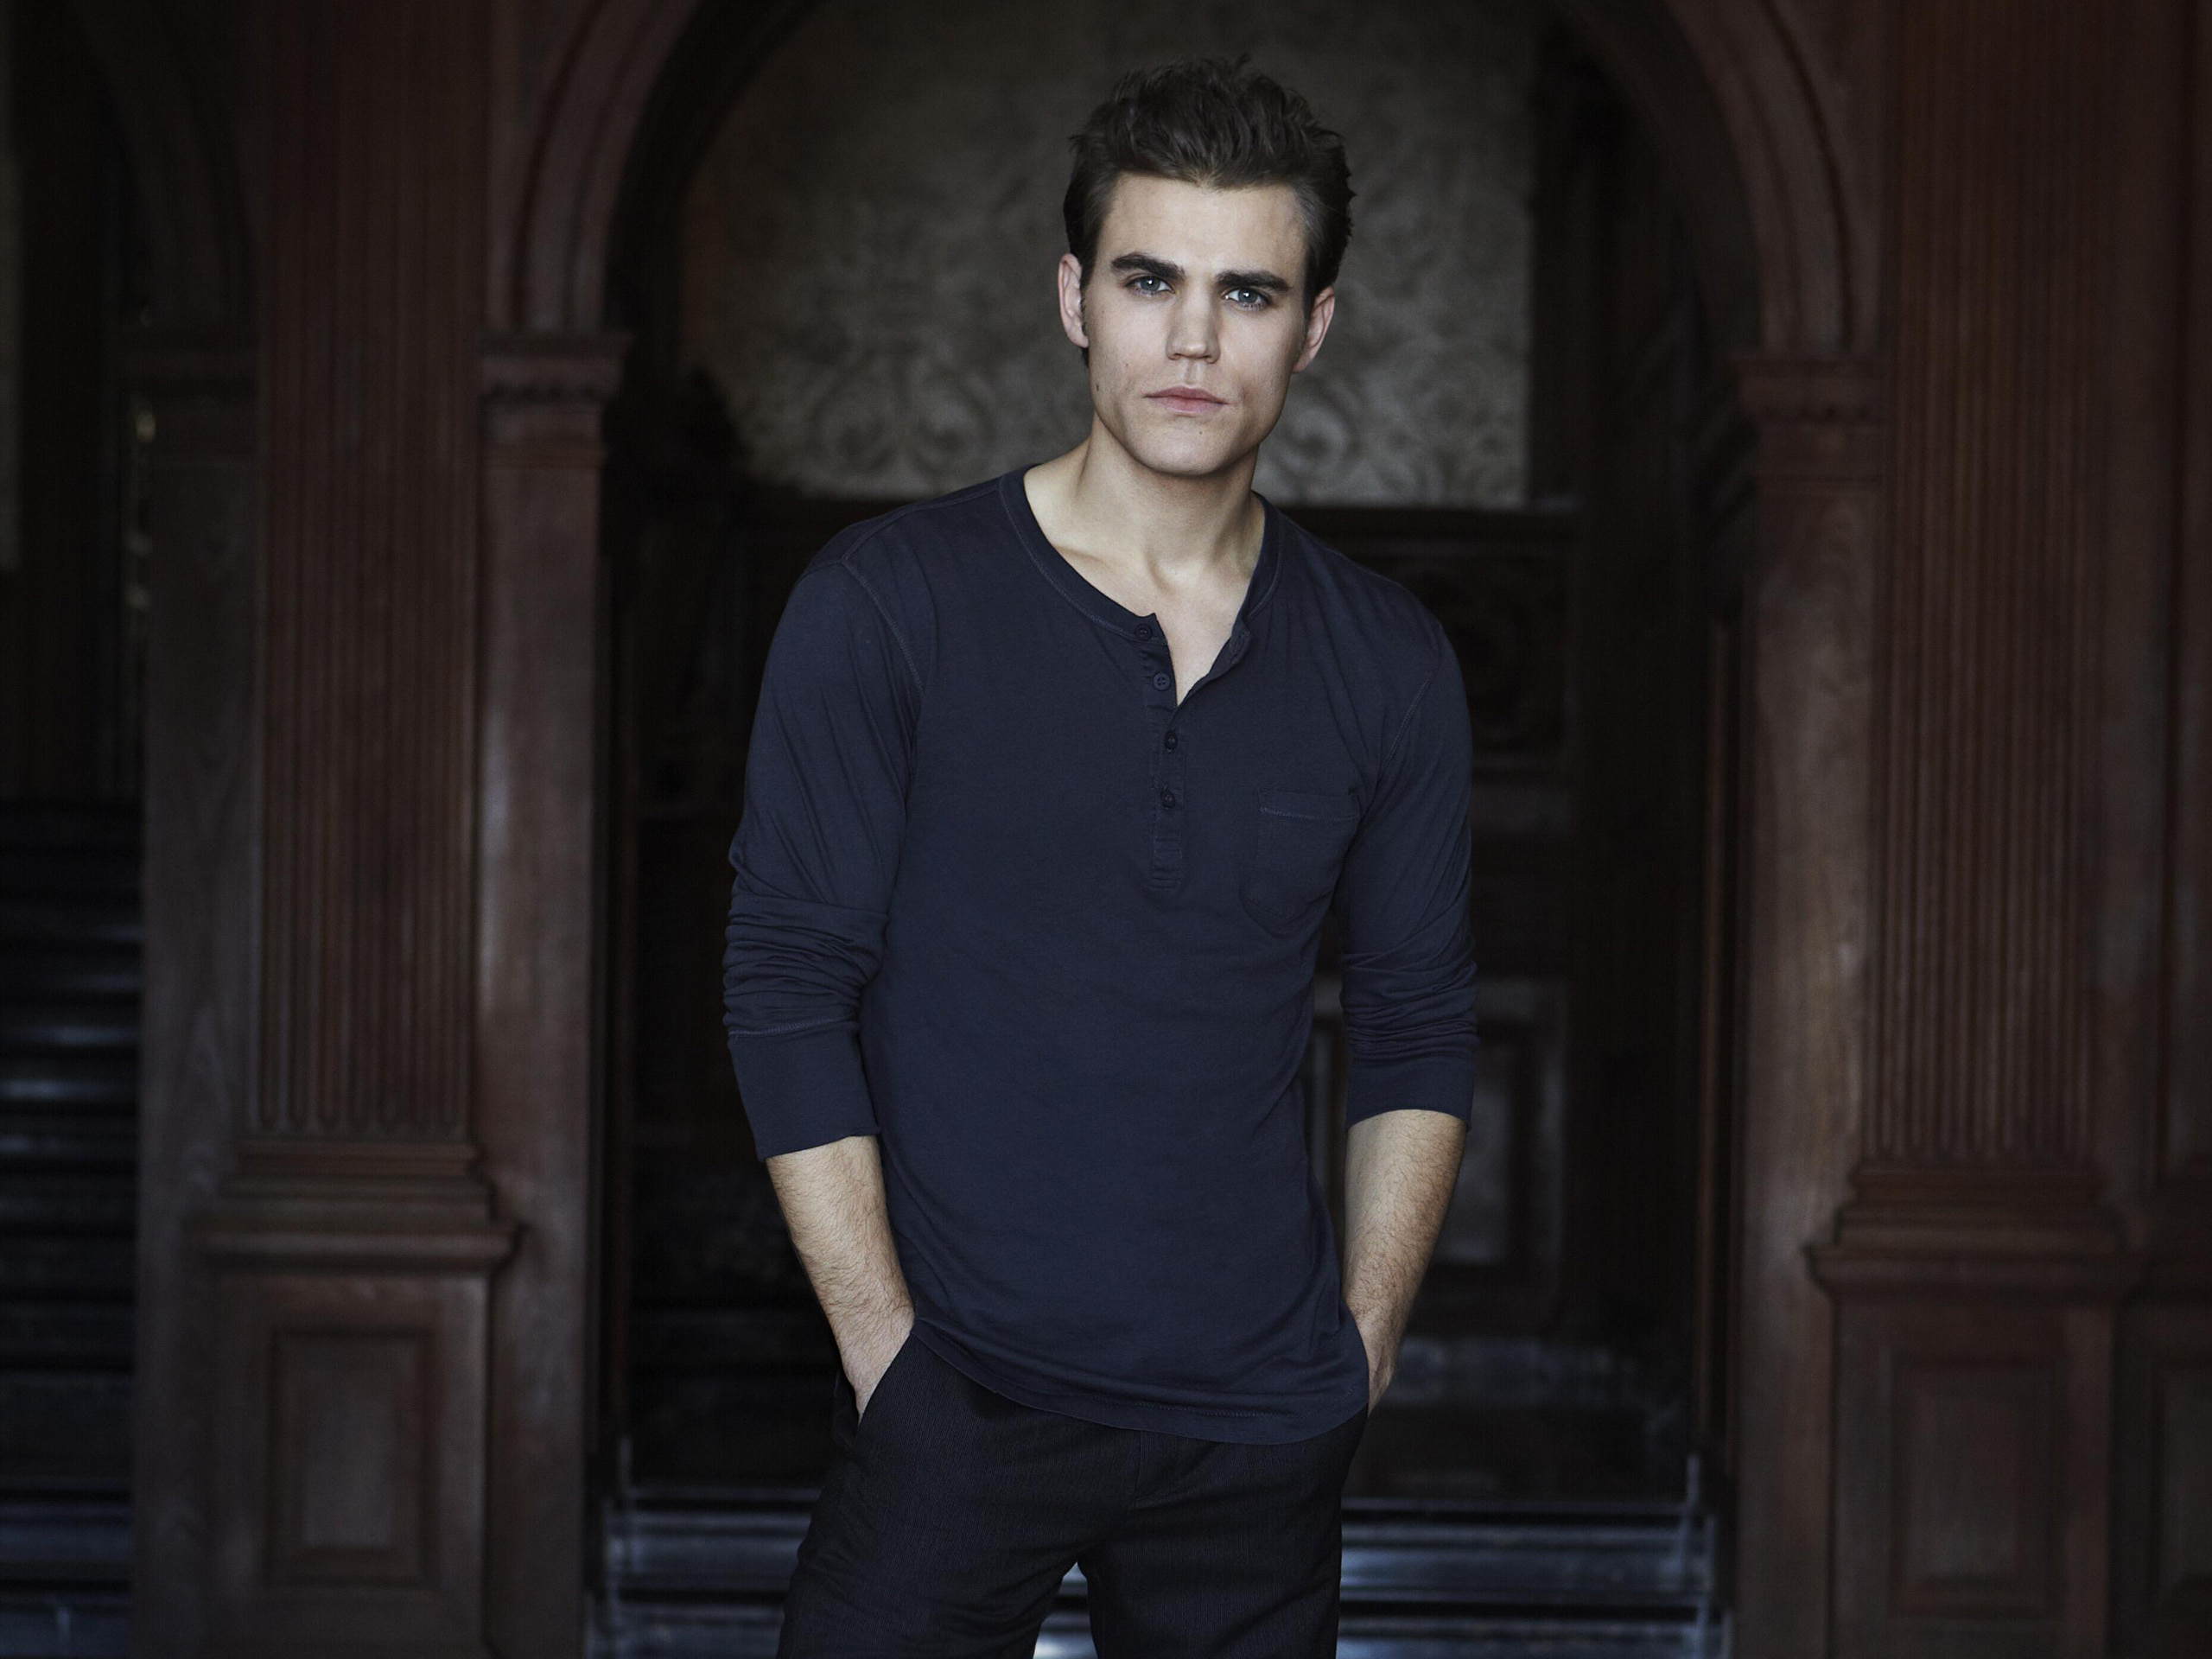 http://images5.fanpop.com/image/photos/28700000/Paul-Wesley-paul-wesley-28759695-2560-1920.jpg